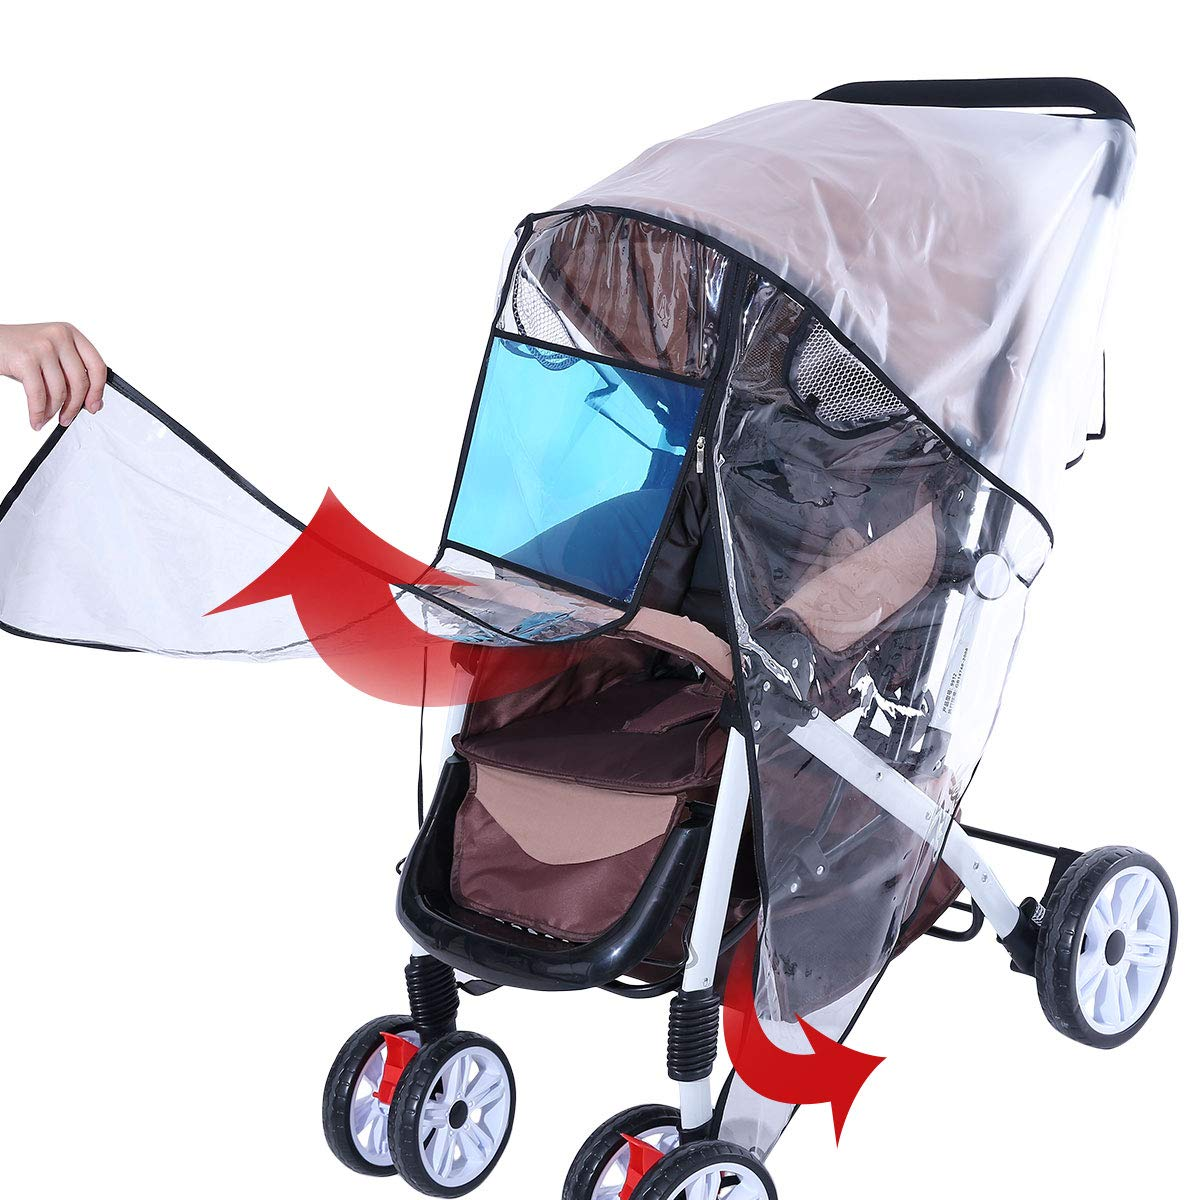 Hrzeem Stroller Rain Cover Stroller Cover Universal Baby Stroller Weather Shield with Storage Pouch EVA Clear Zip Front Opening Waterproof Windproof Protection Easy to Install for Outdoor Use (Black) by Hrzeem (Image #4)